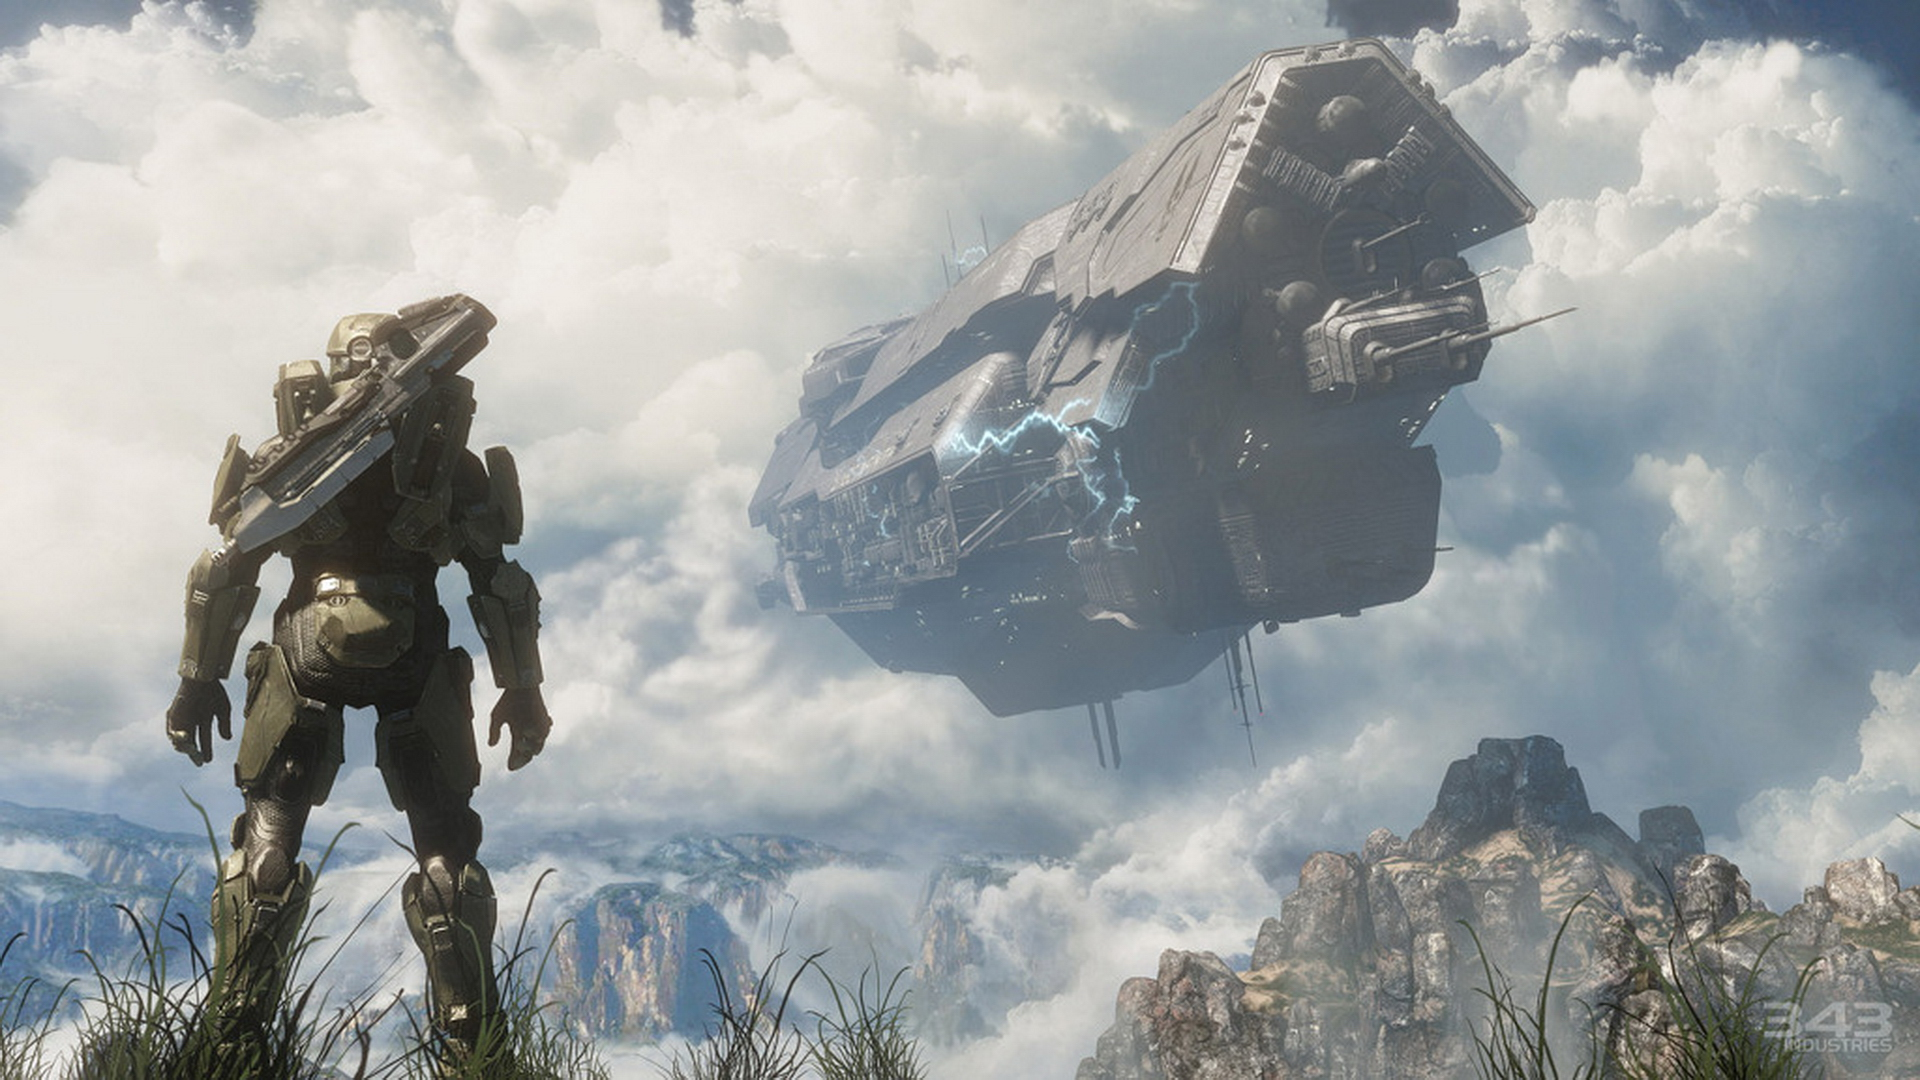 Halo 4   Master Chief Spartan   UNSC ship crashing 1920x1080